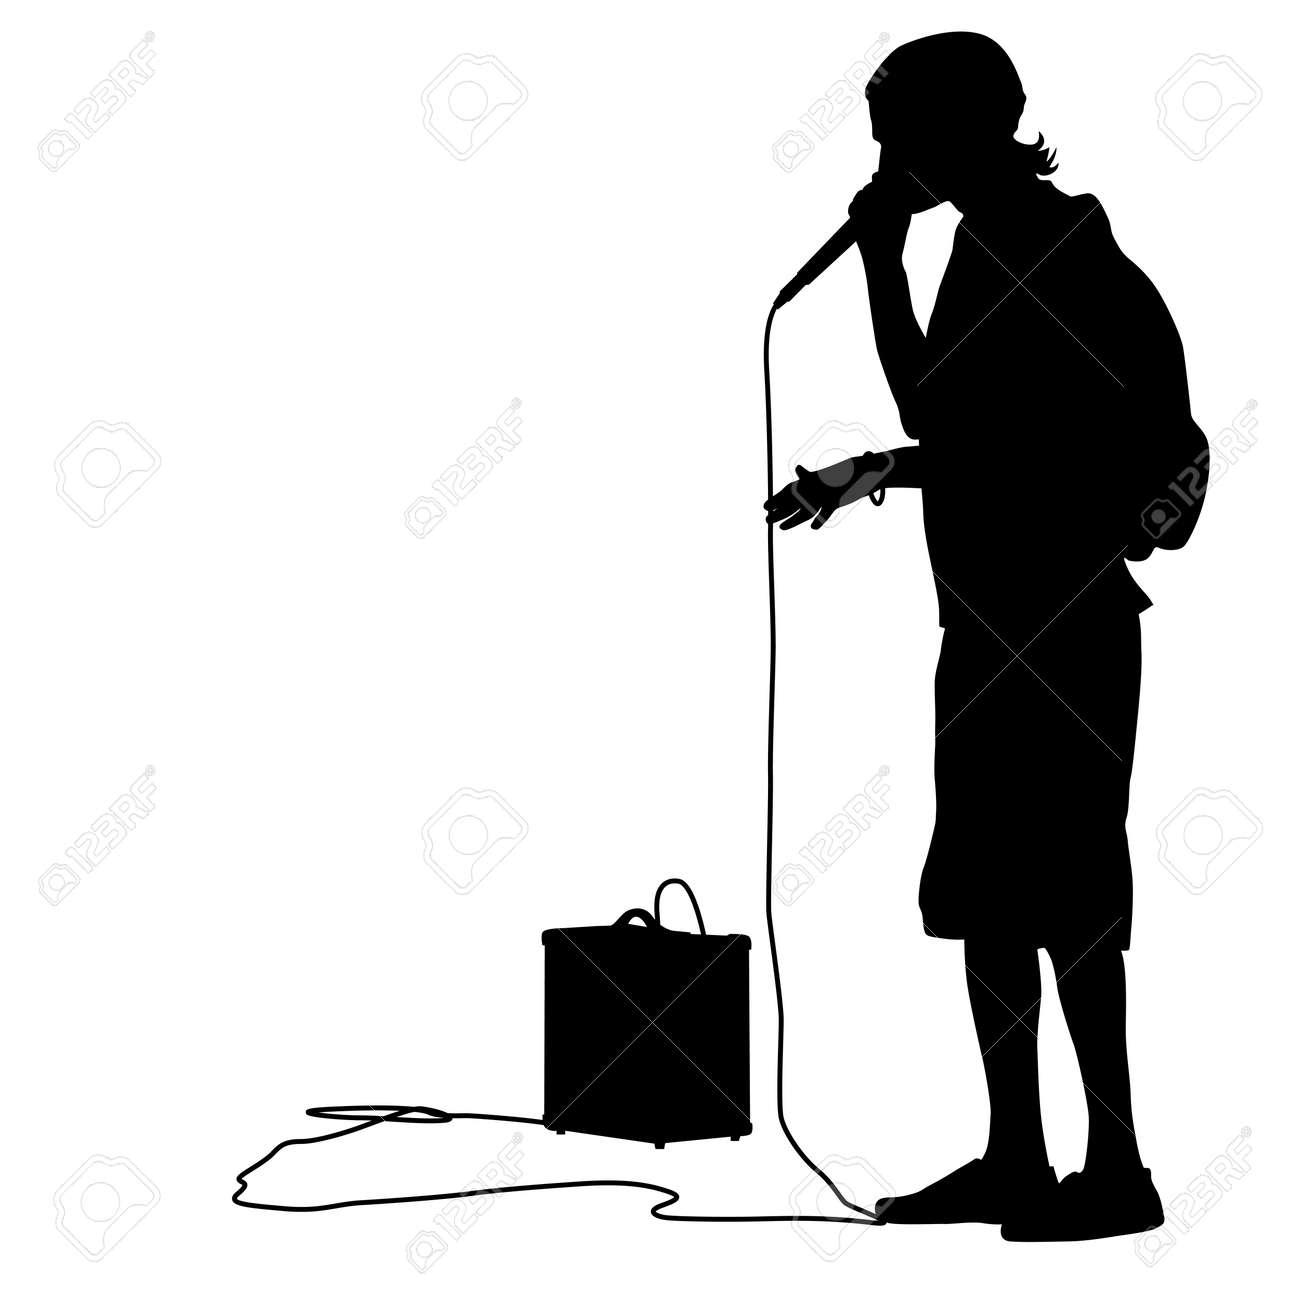 Silhouette of the guy beatbox with a microphone - 30908291